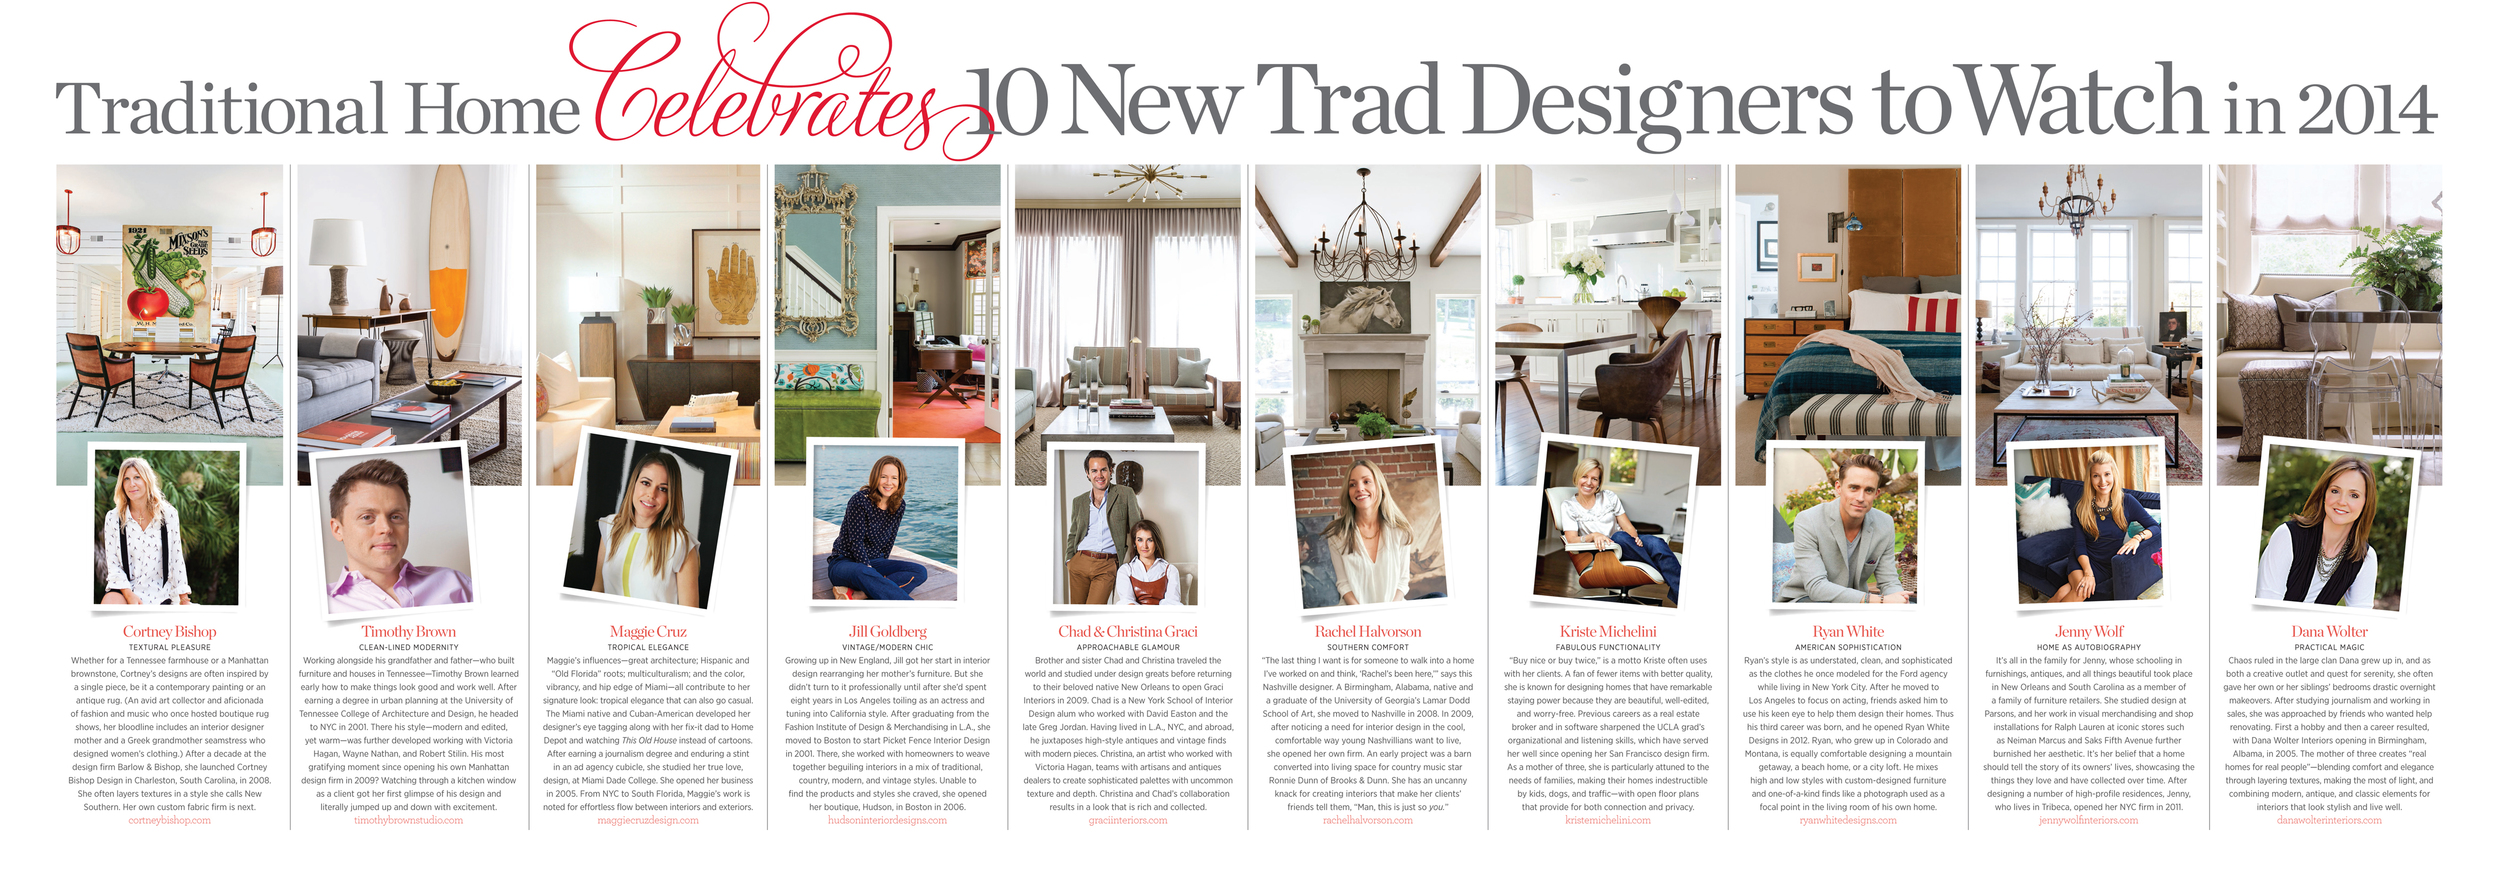 Traditional Home 10 new Trad Designers to watch in 2014